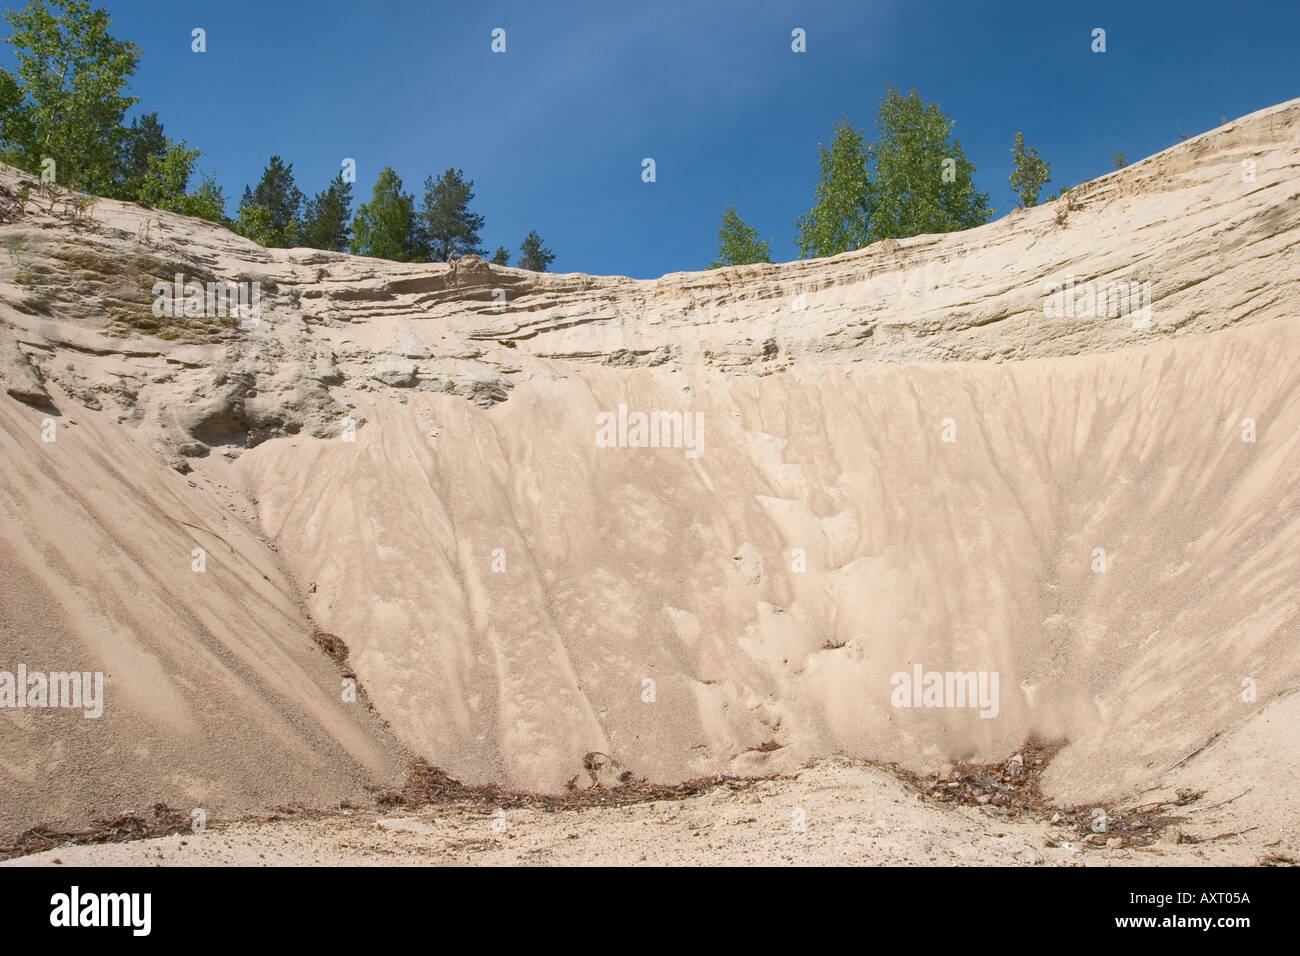 Sandpit wall in a sandy ridge , glacial esker - Stock Image